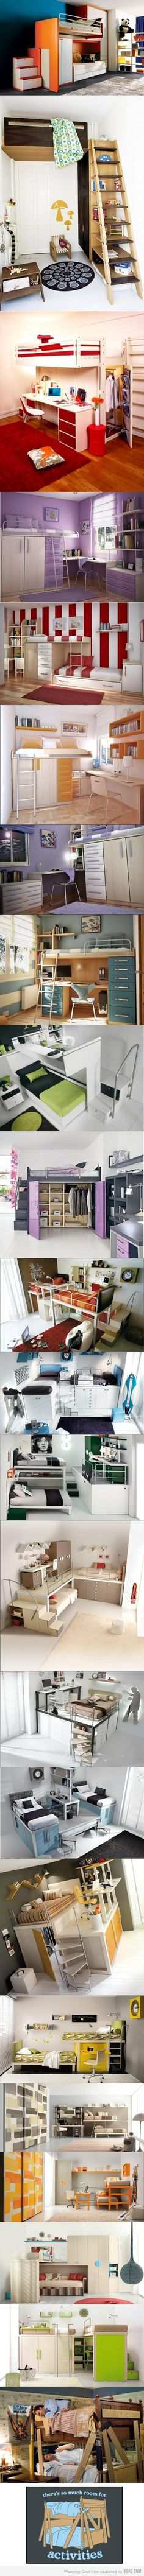 Room Design Click on small photos to expand.  http://d24w6bsrhbeh9d.cloudfront.net/photo/3214520_700b.jpg